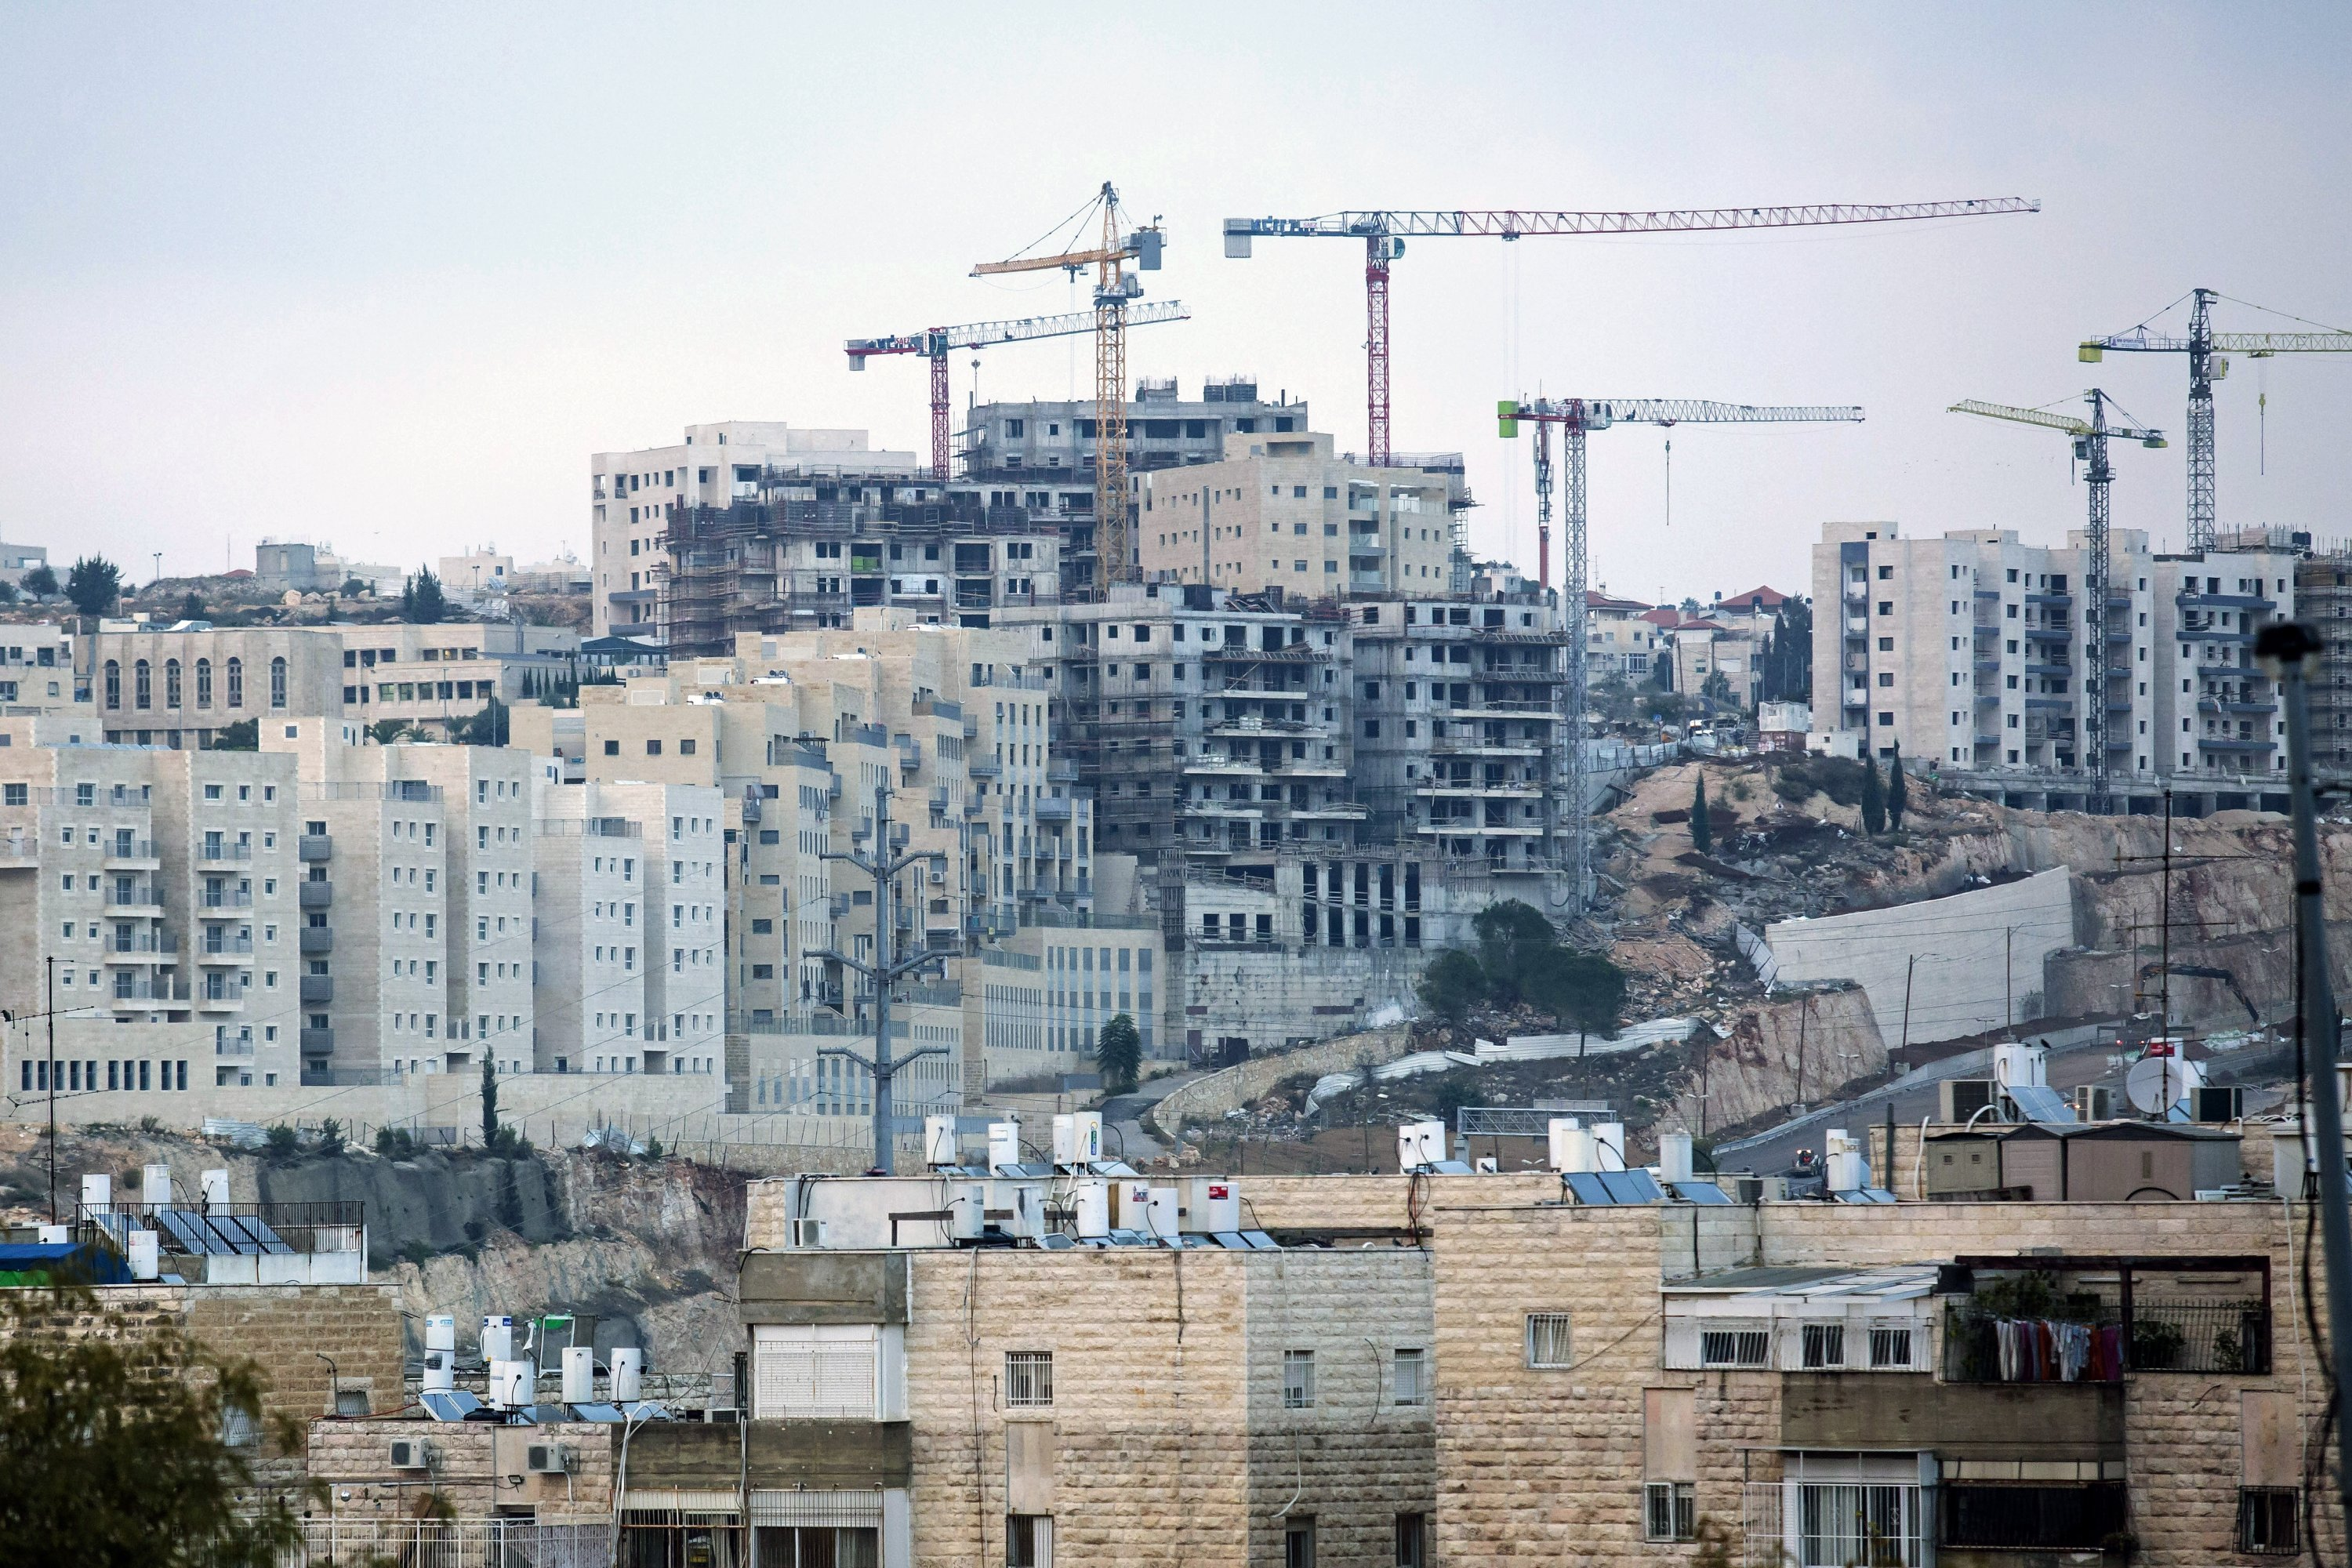 A general view of a part of Israel's illegal settlements of Ramat Shlomo, Israeli-occupied East Jerusalem, Nov. 16, 2020. (Photo by Getty Images)